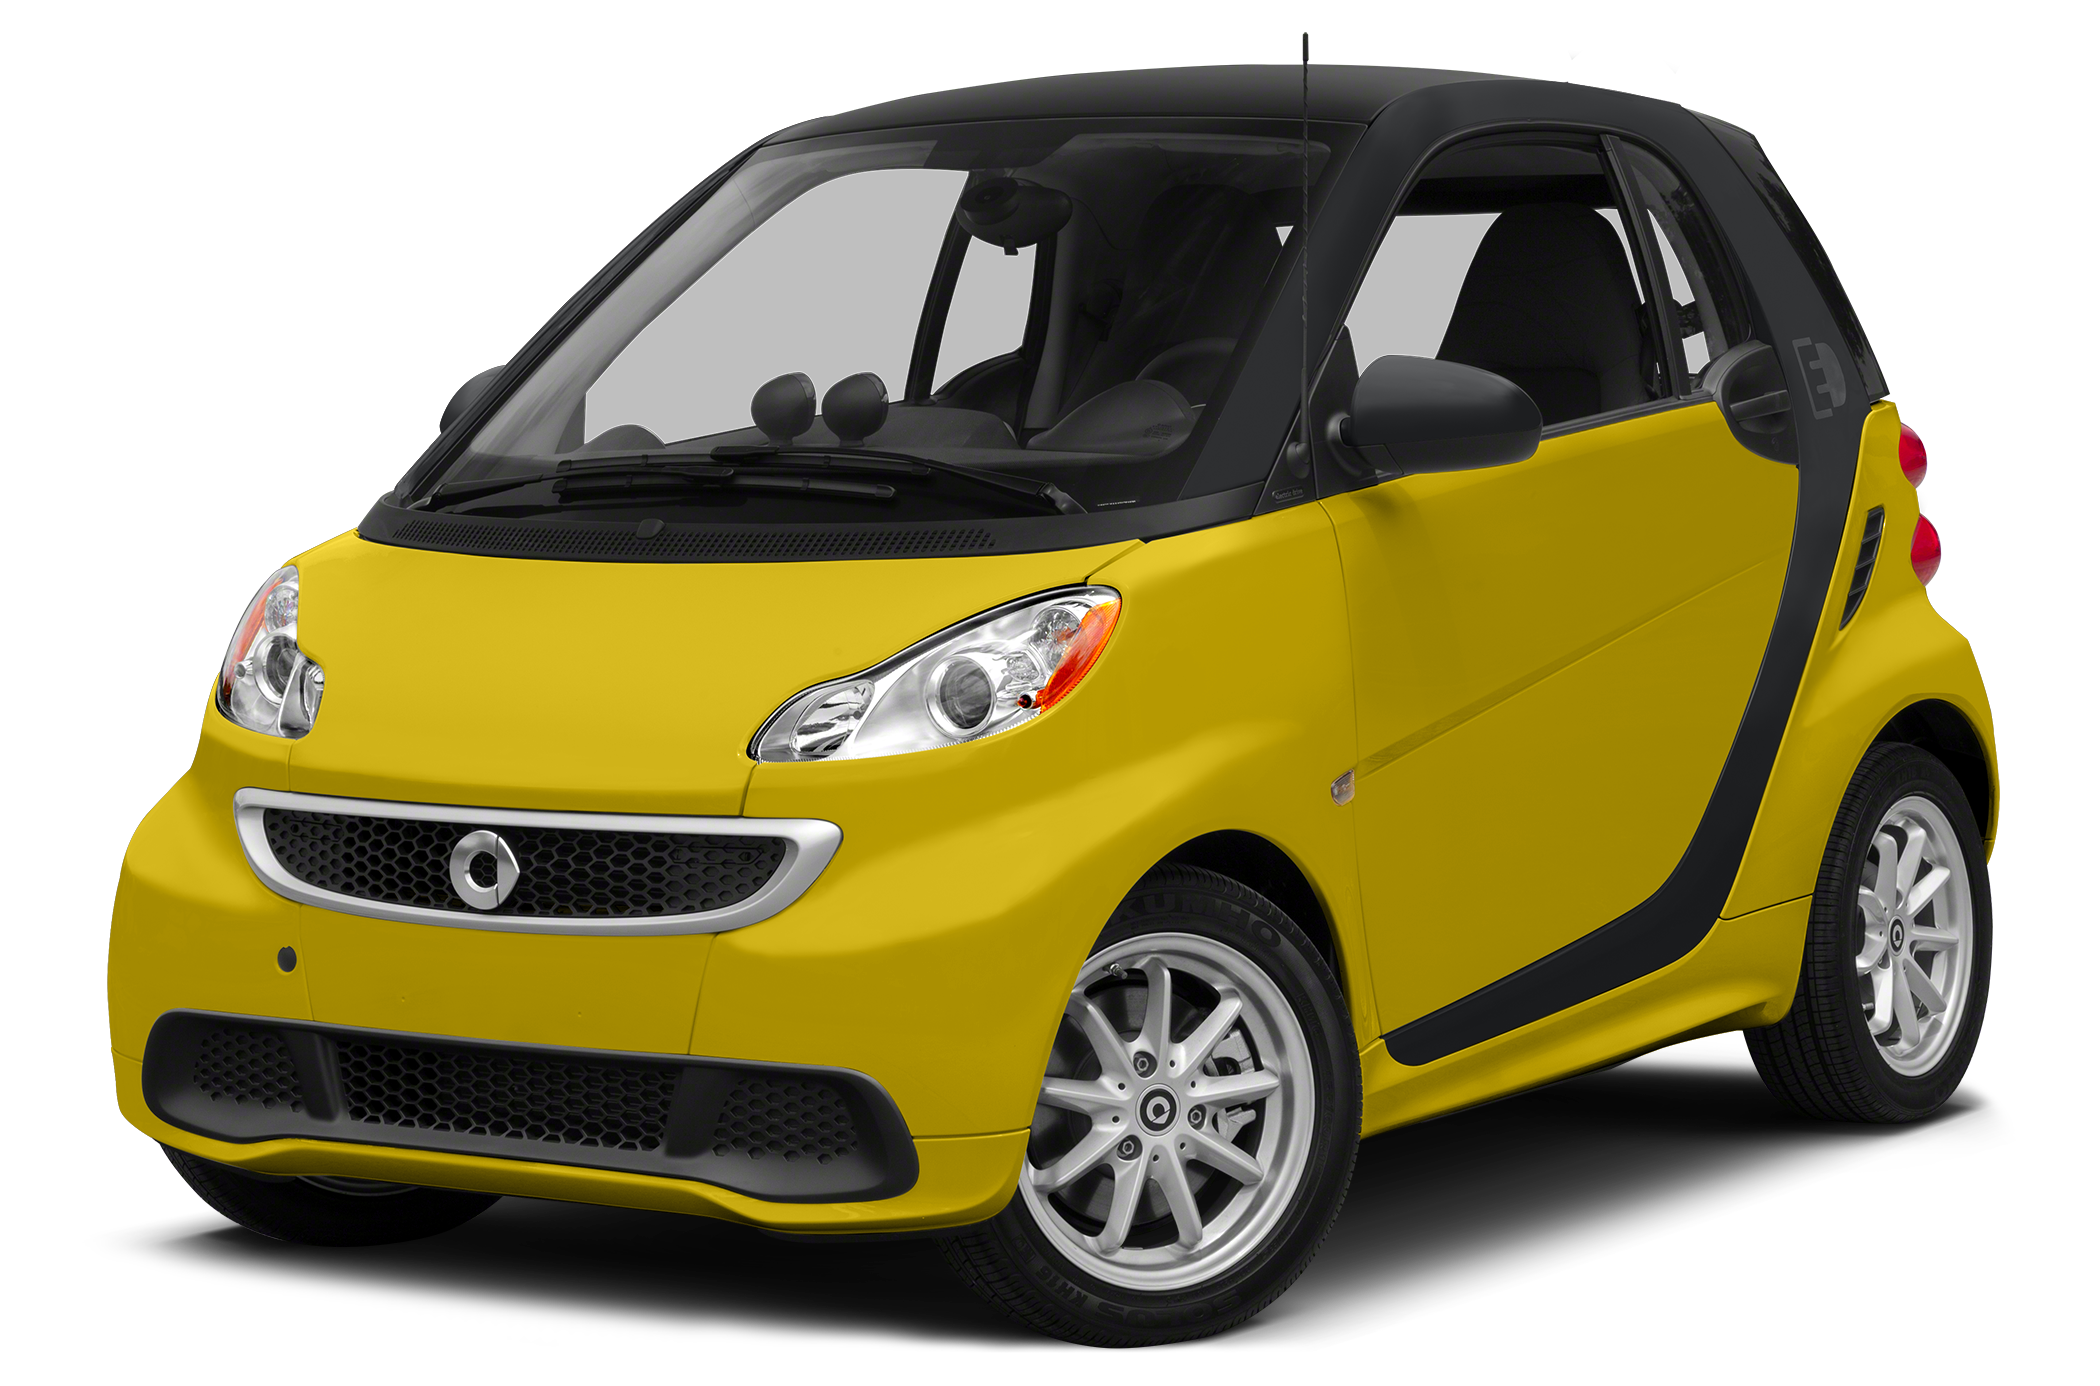 2019 Smart fortwo electric drive photo - 4